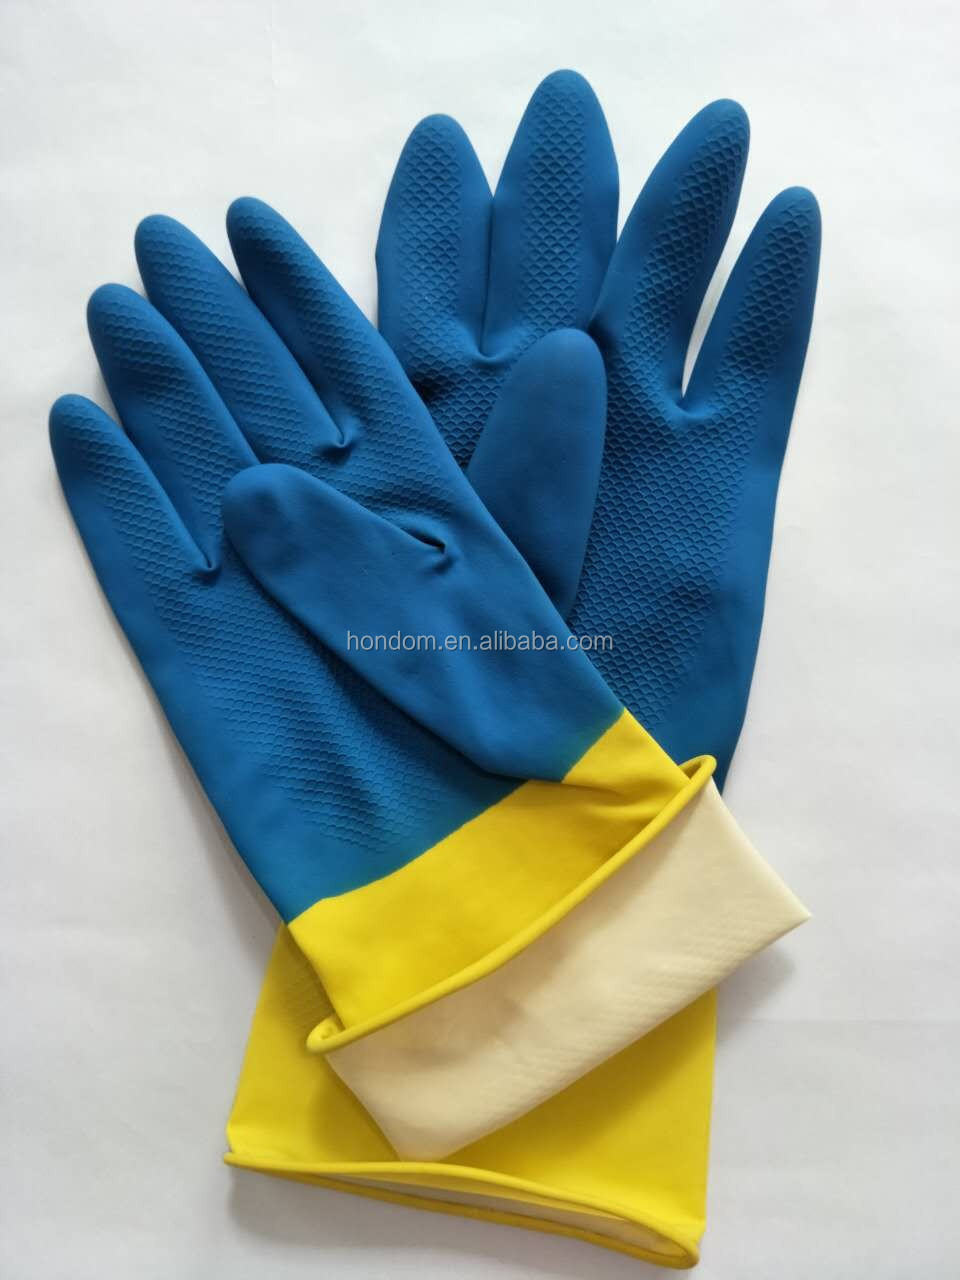 Household Waterproof Long Sleeve Rubber Latex Gloves